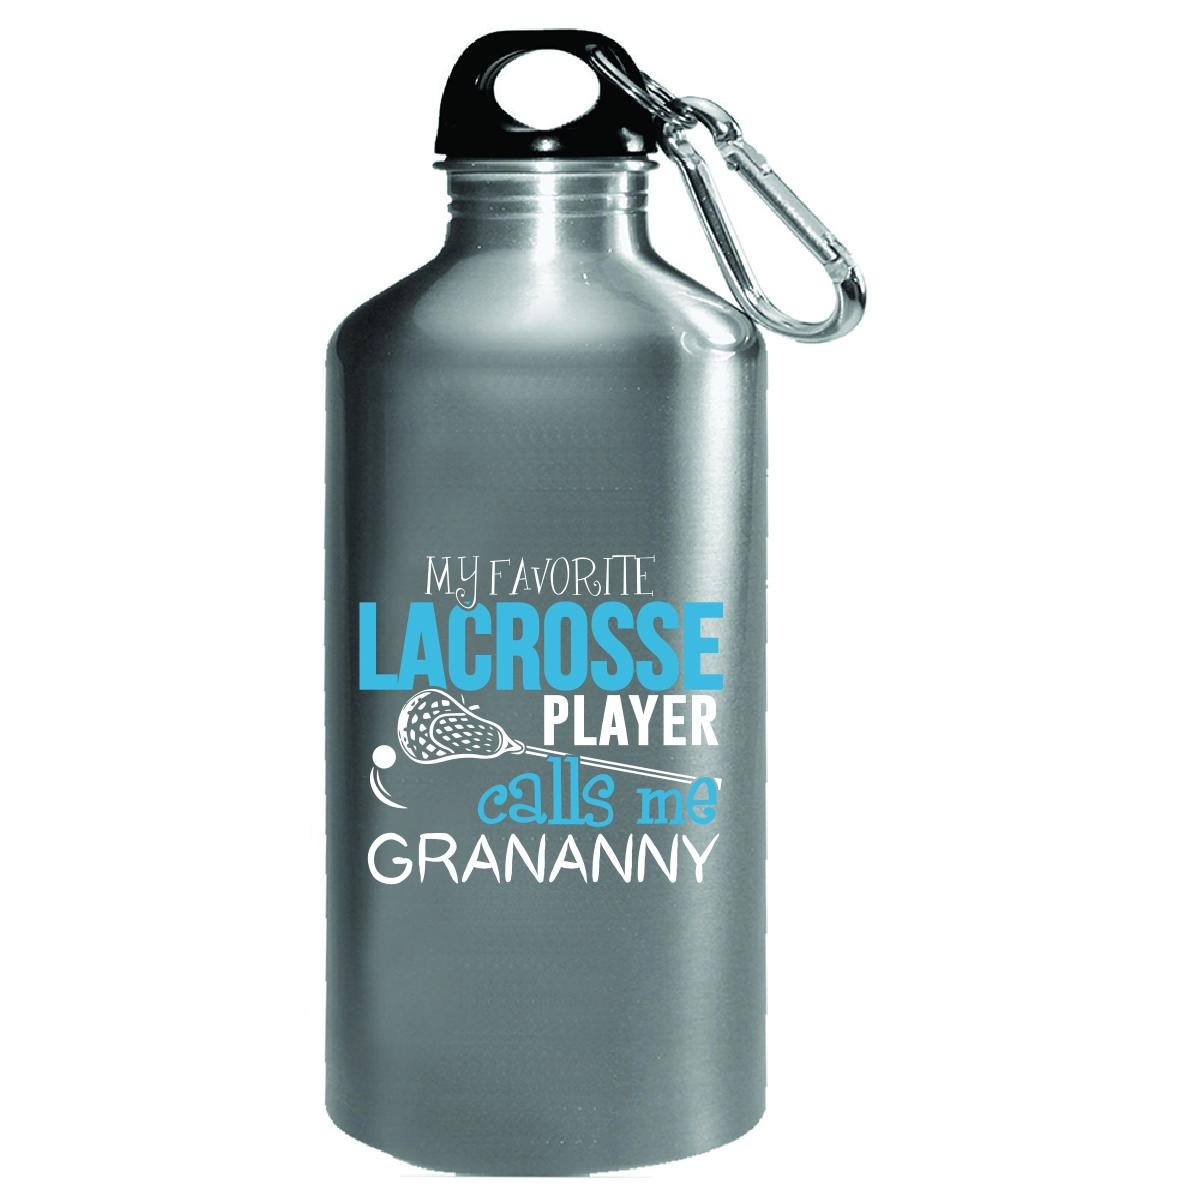 My Favorite Lacrosse Player Calls Me Grananny - Water Bottle